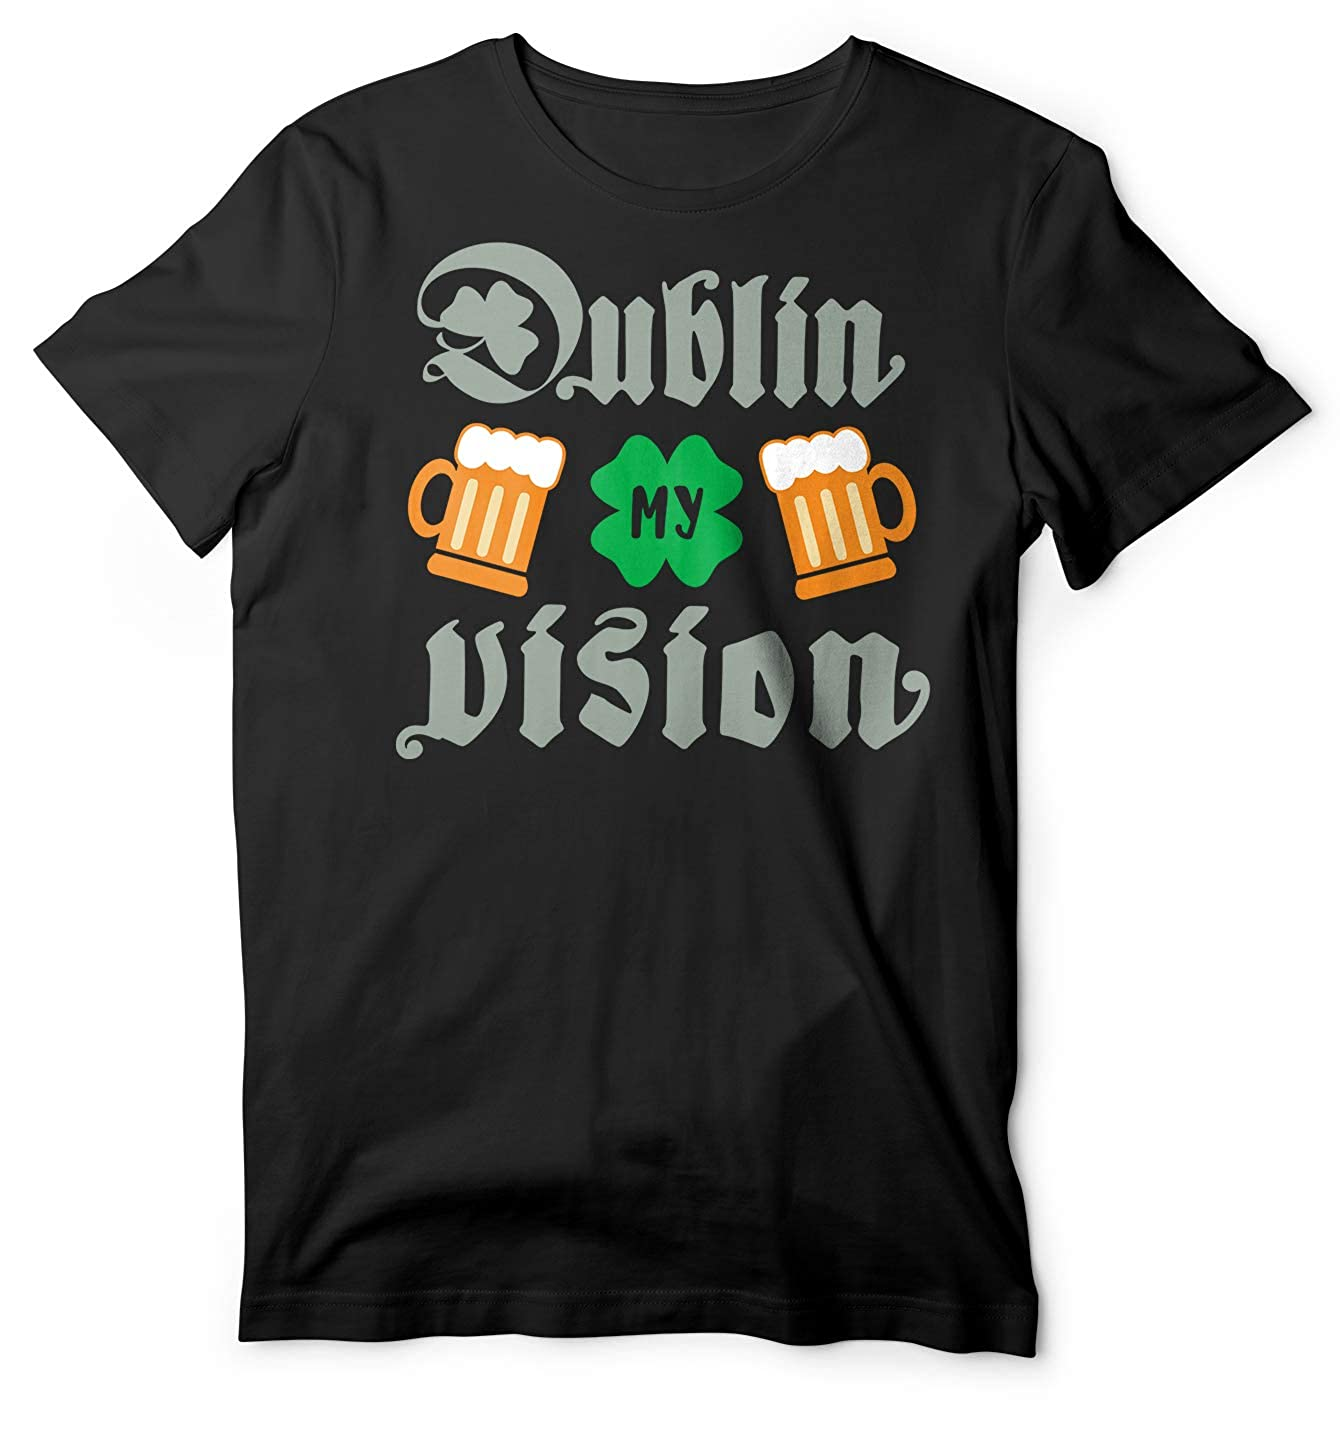 St Patricks Day St Paddys Day Dublin My Vision Green Beer Drinking T